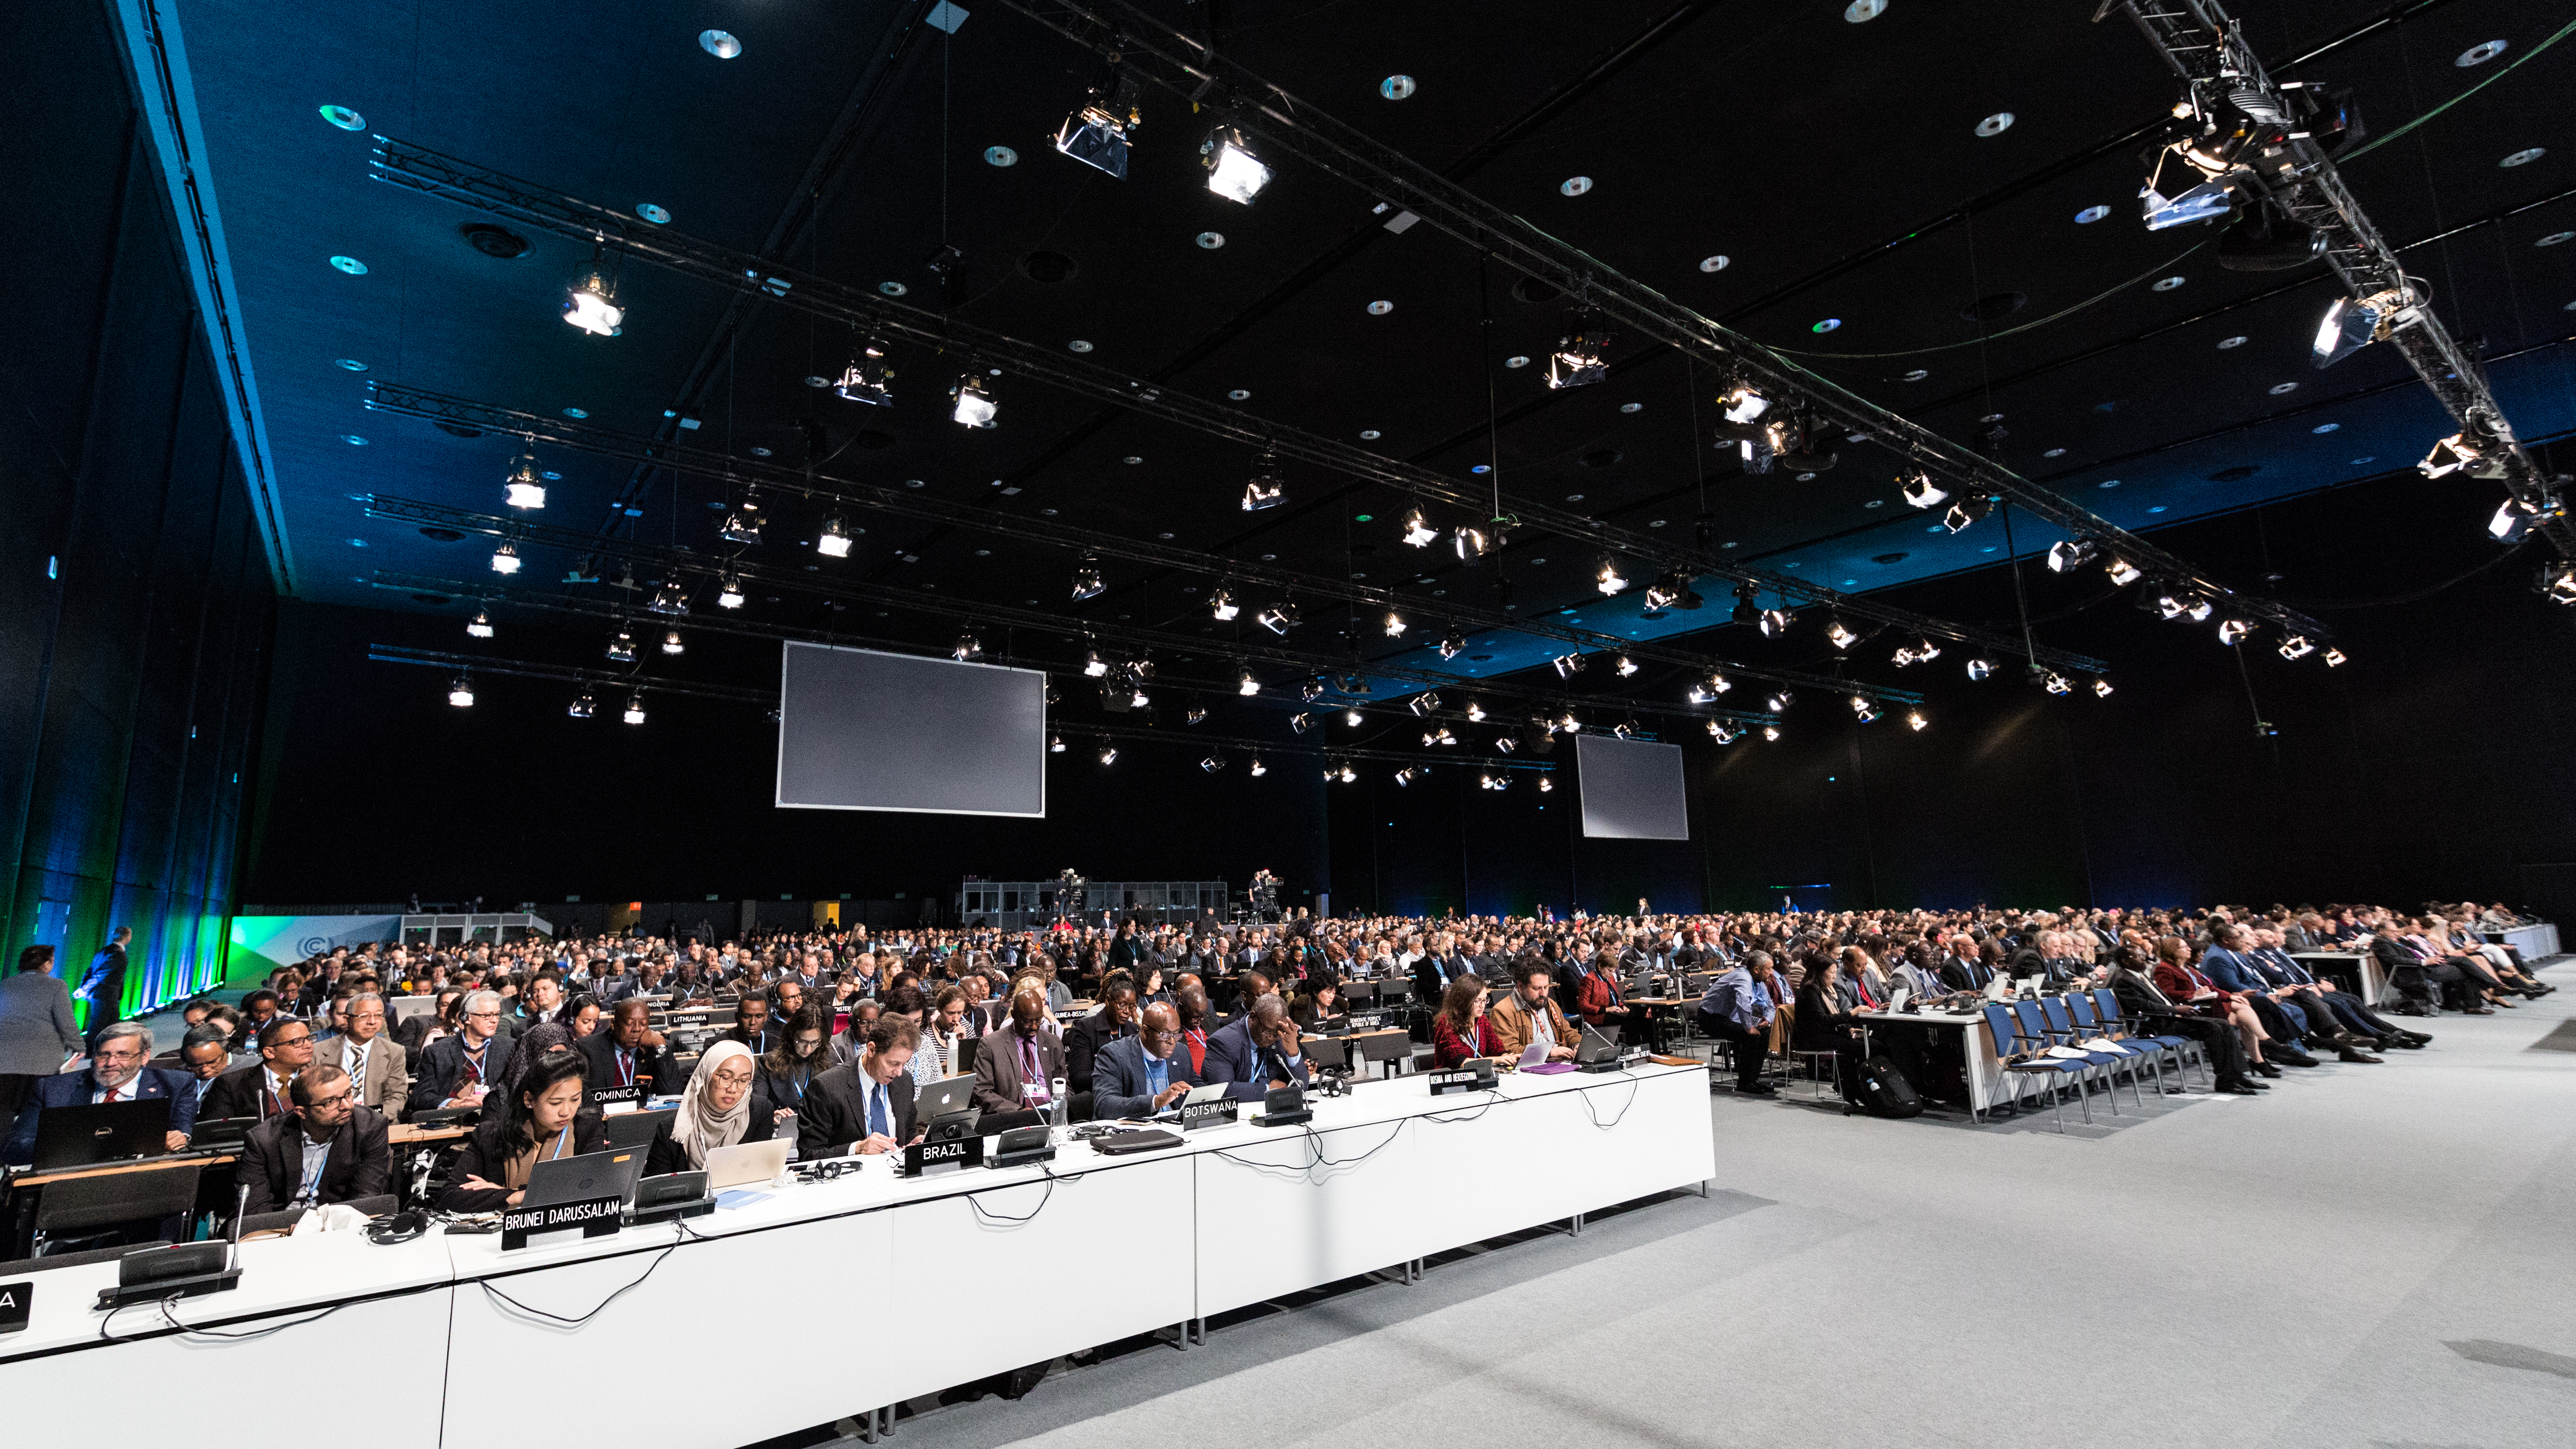 Katowice Climate Change Conference - December 2018